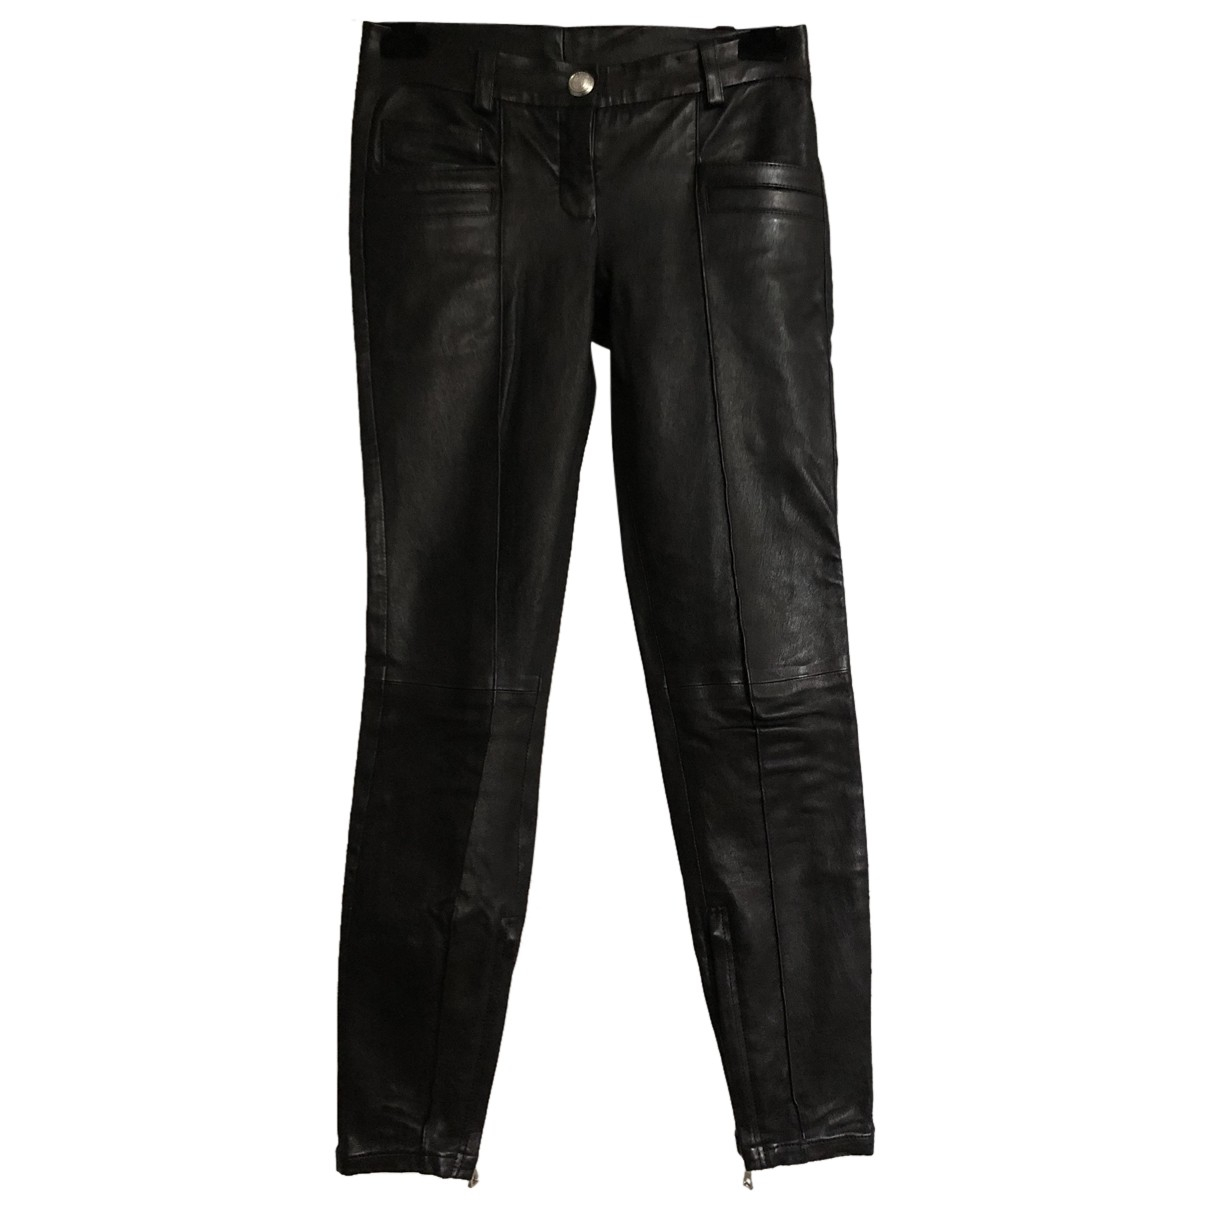 Balmain N Black Leather Trousers for Women 34 FR